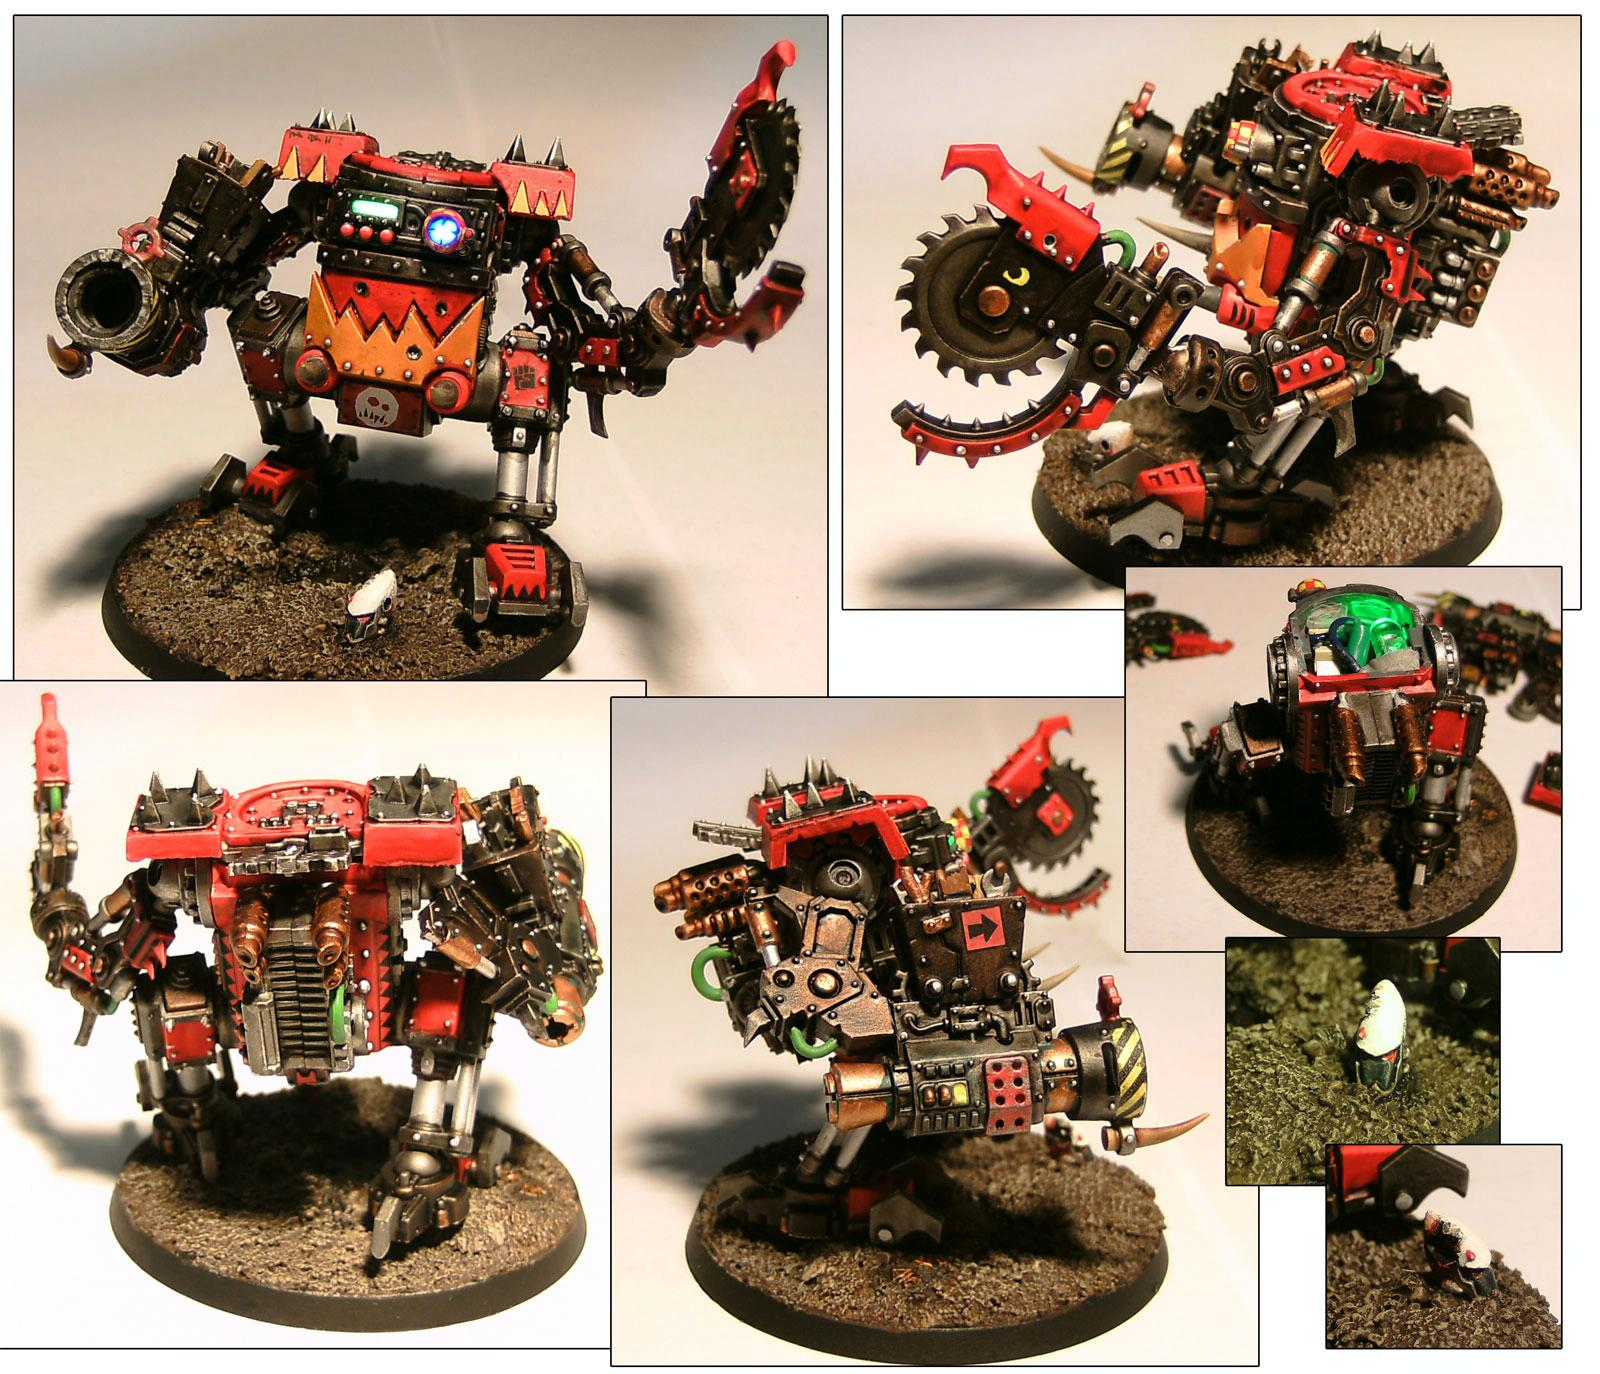 Dreadnought, Killa Kan, LED, Orks, Warhammer 40,000